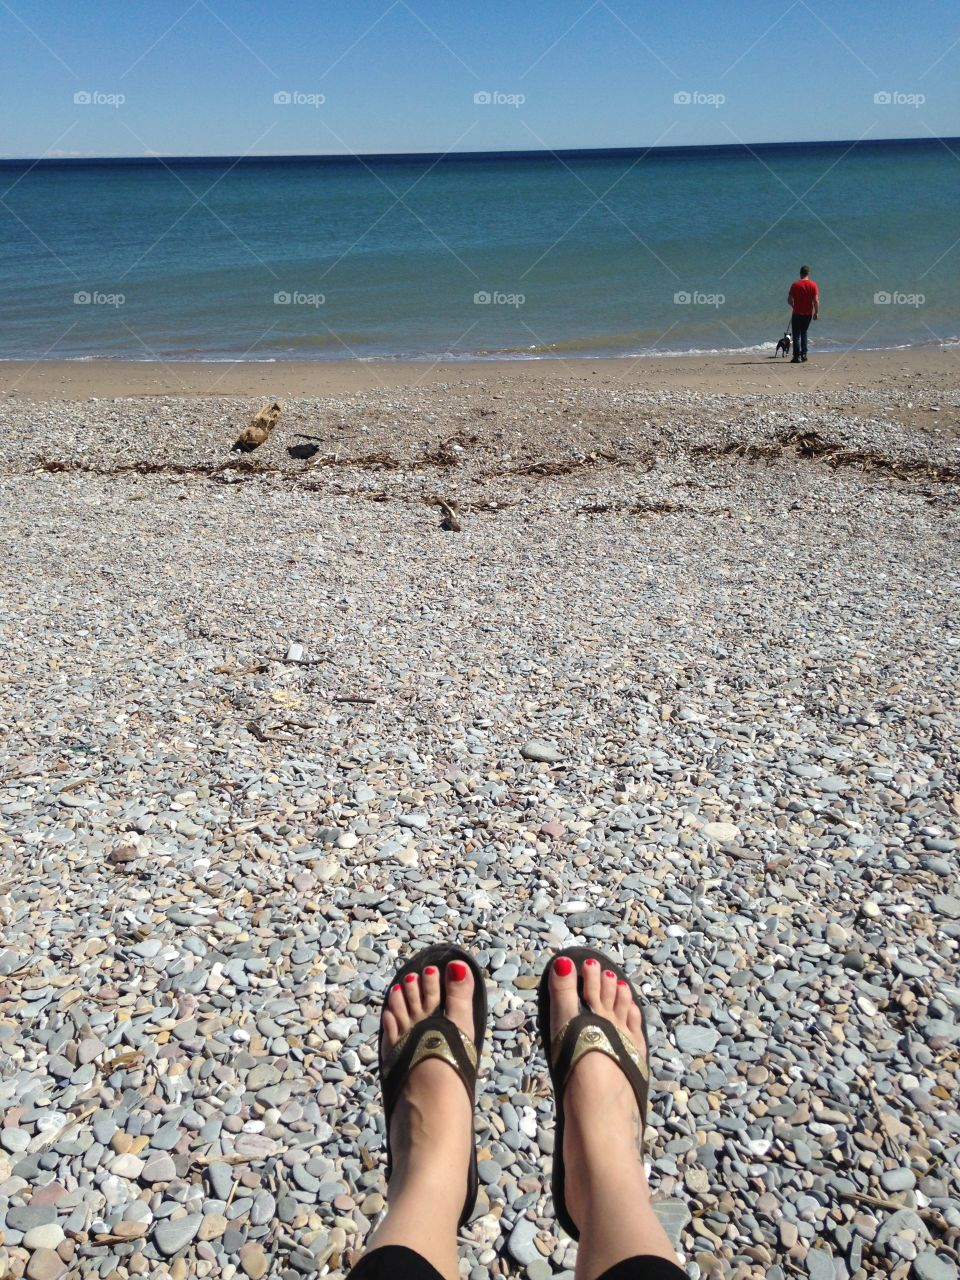 On the beautiful beach of Gaspesie looking at the shore of the St-Laurent Gulf